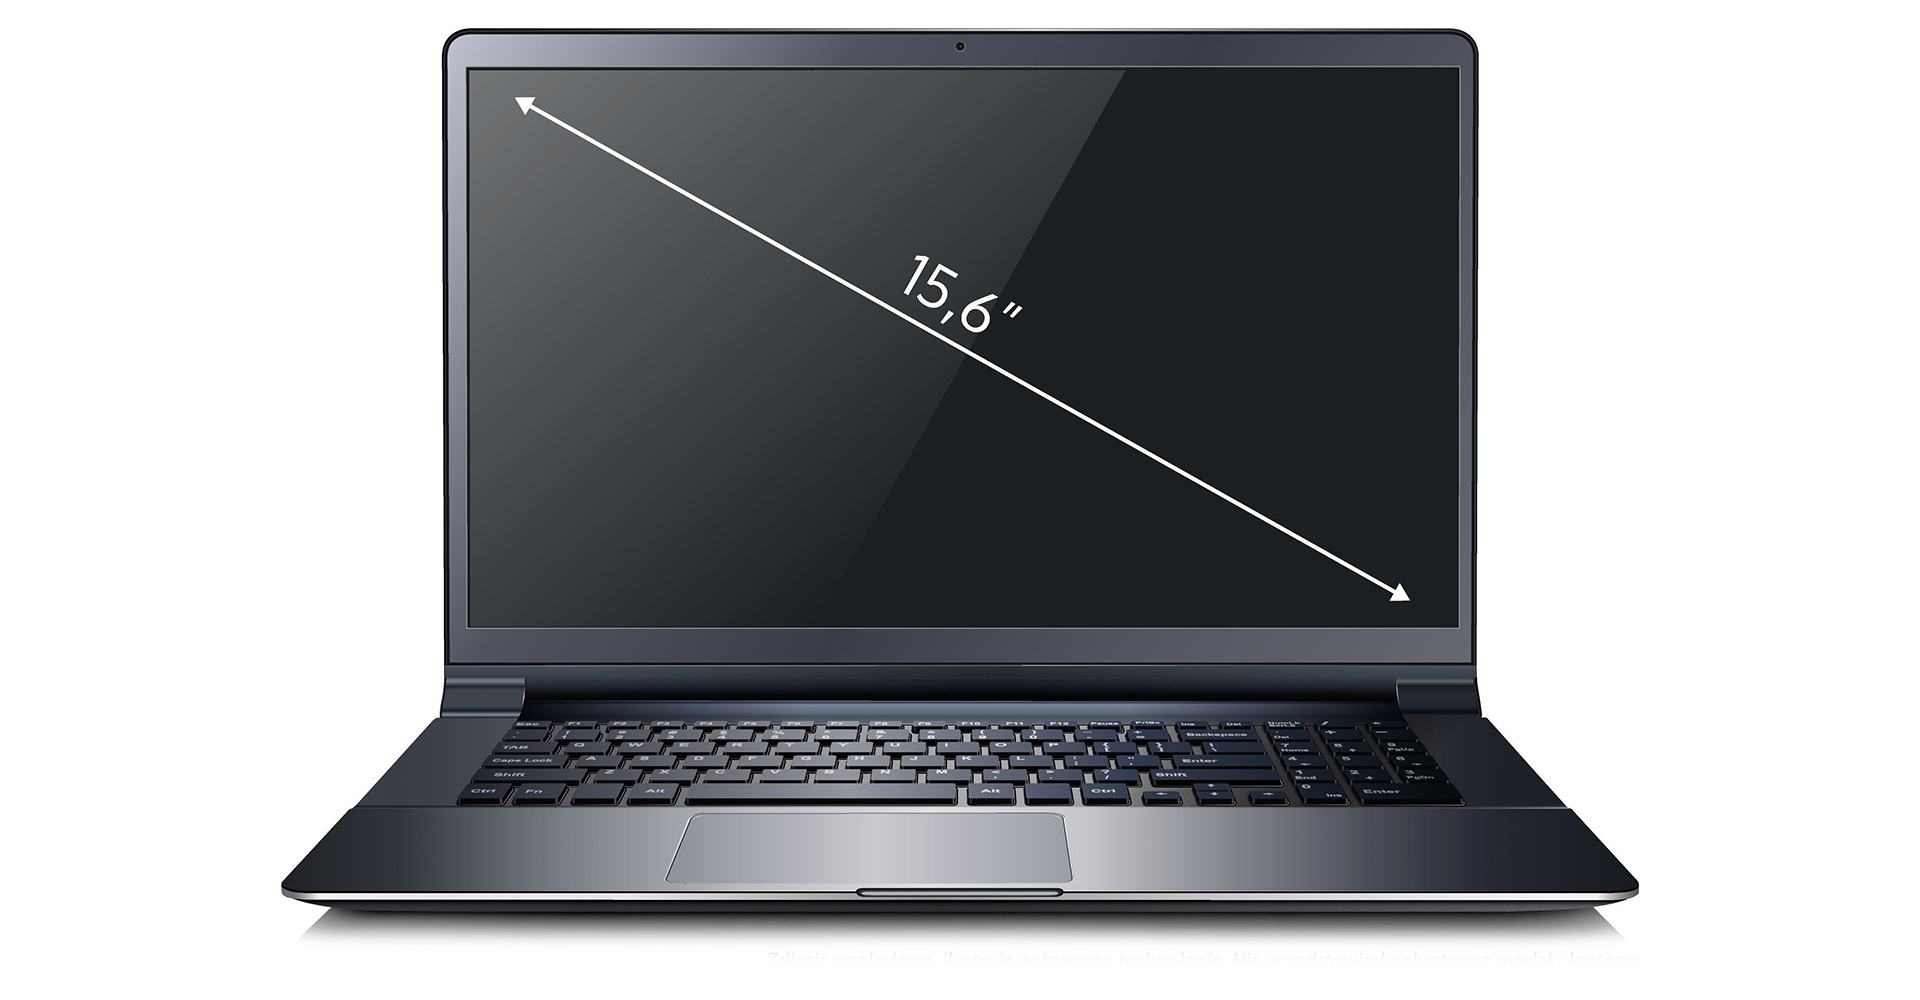 Lenovo IdeaPad 330-15ARR (81D200LFPB) 12 GB RAM/ 512 GB SSD/ Windows 10 Home                             15.6 collas pa diagonāli